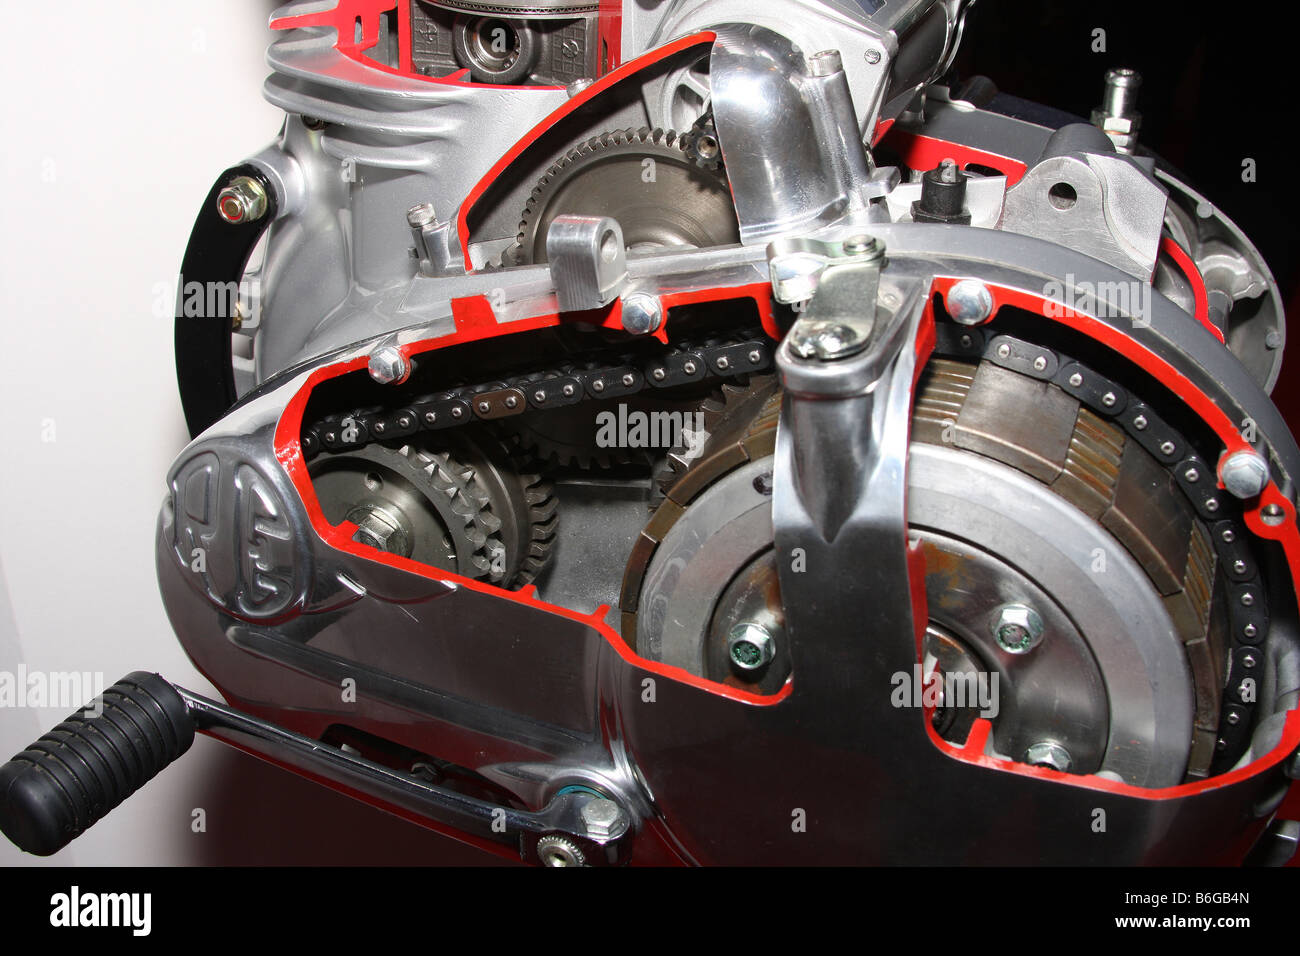 hight resolution of cut away view of clutch gearbox and change arm on modern motorcycle engine